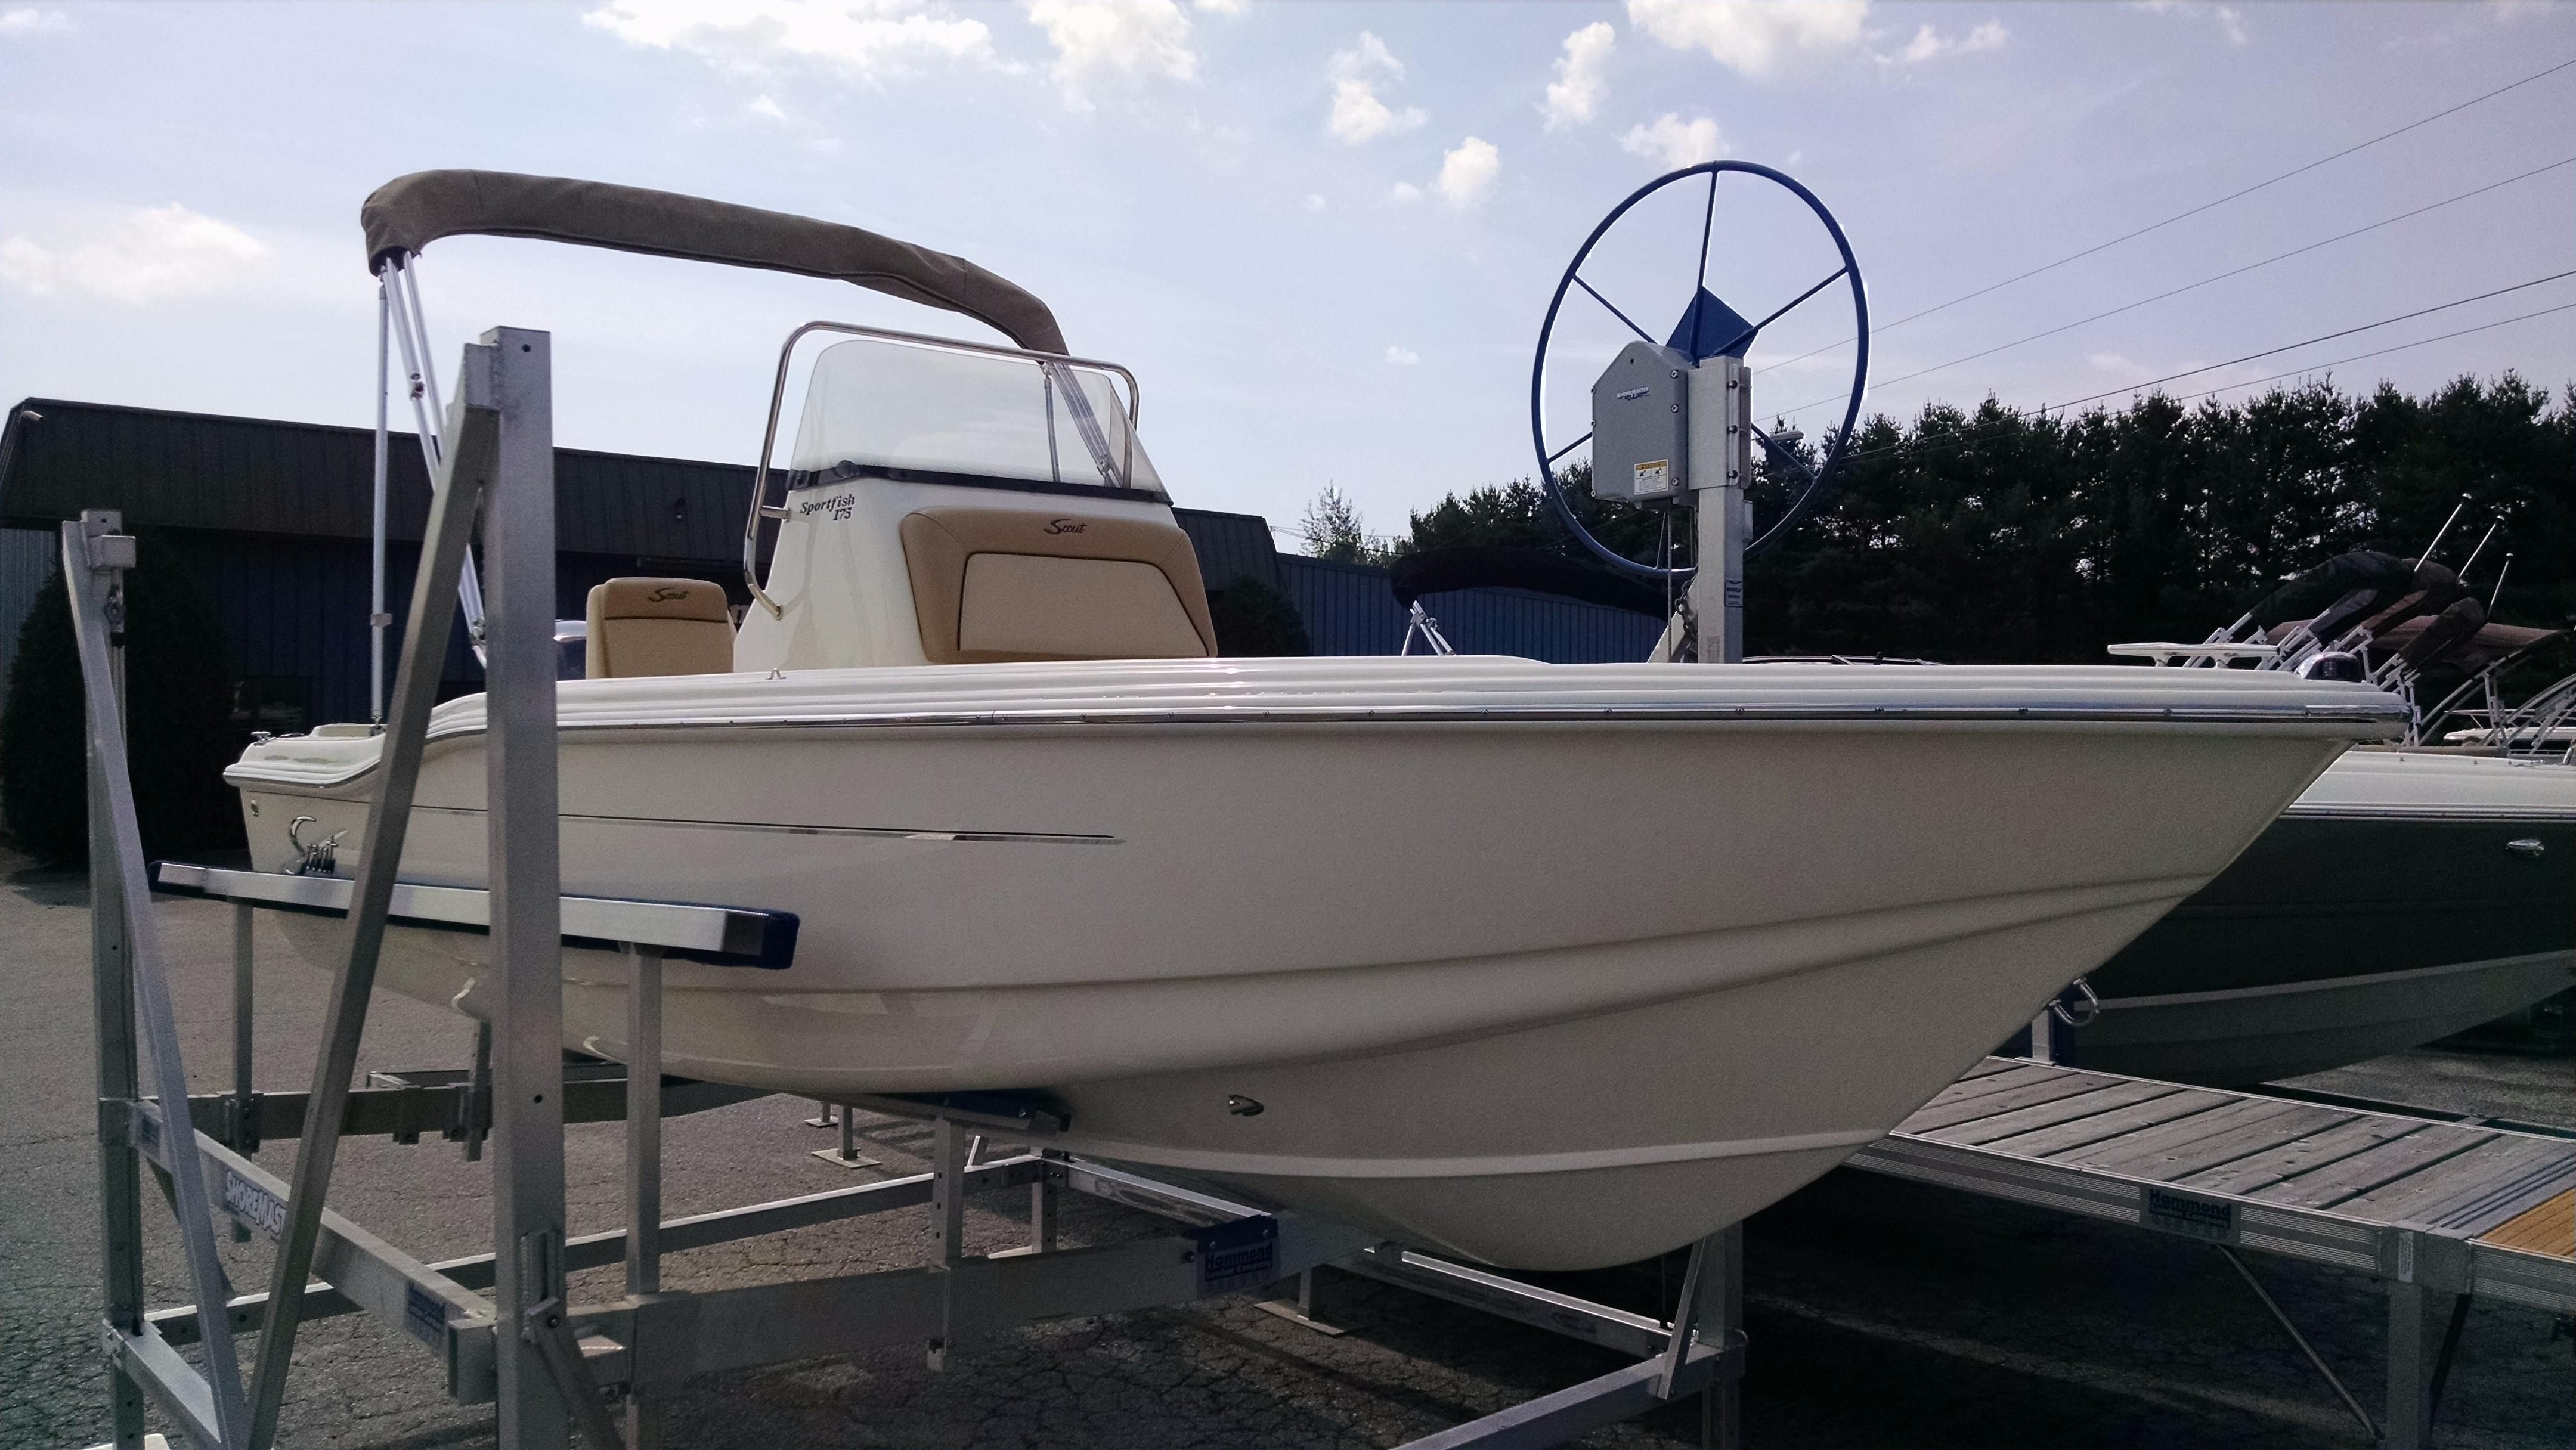 2017 scout 175 sportfish power boat for sale www for Fishing boat dealers near me